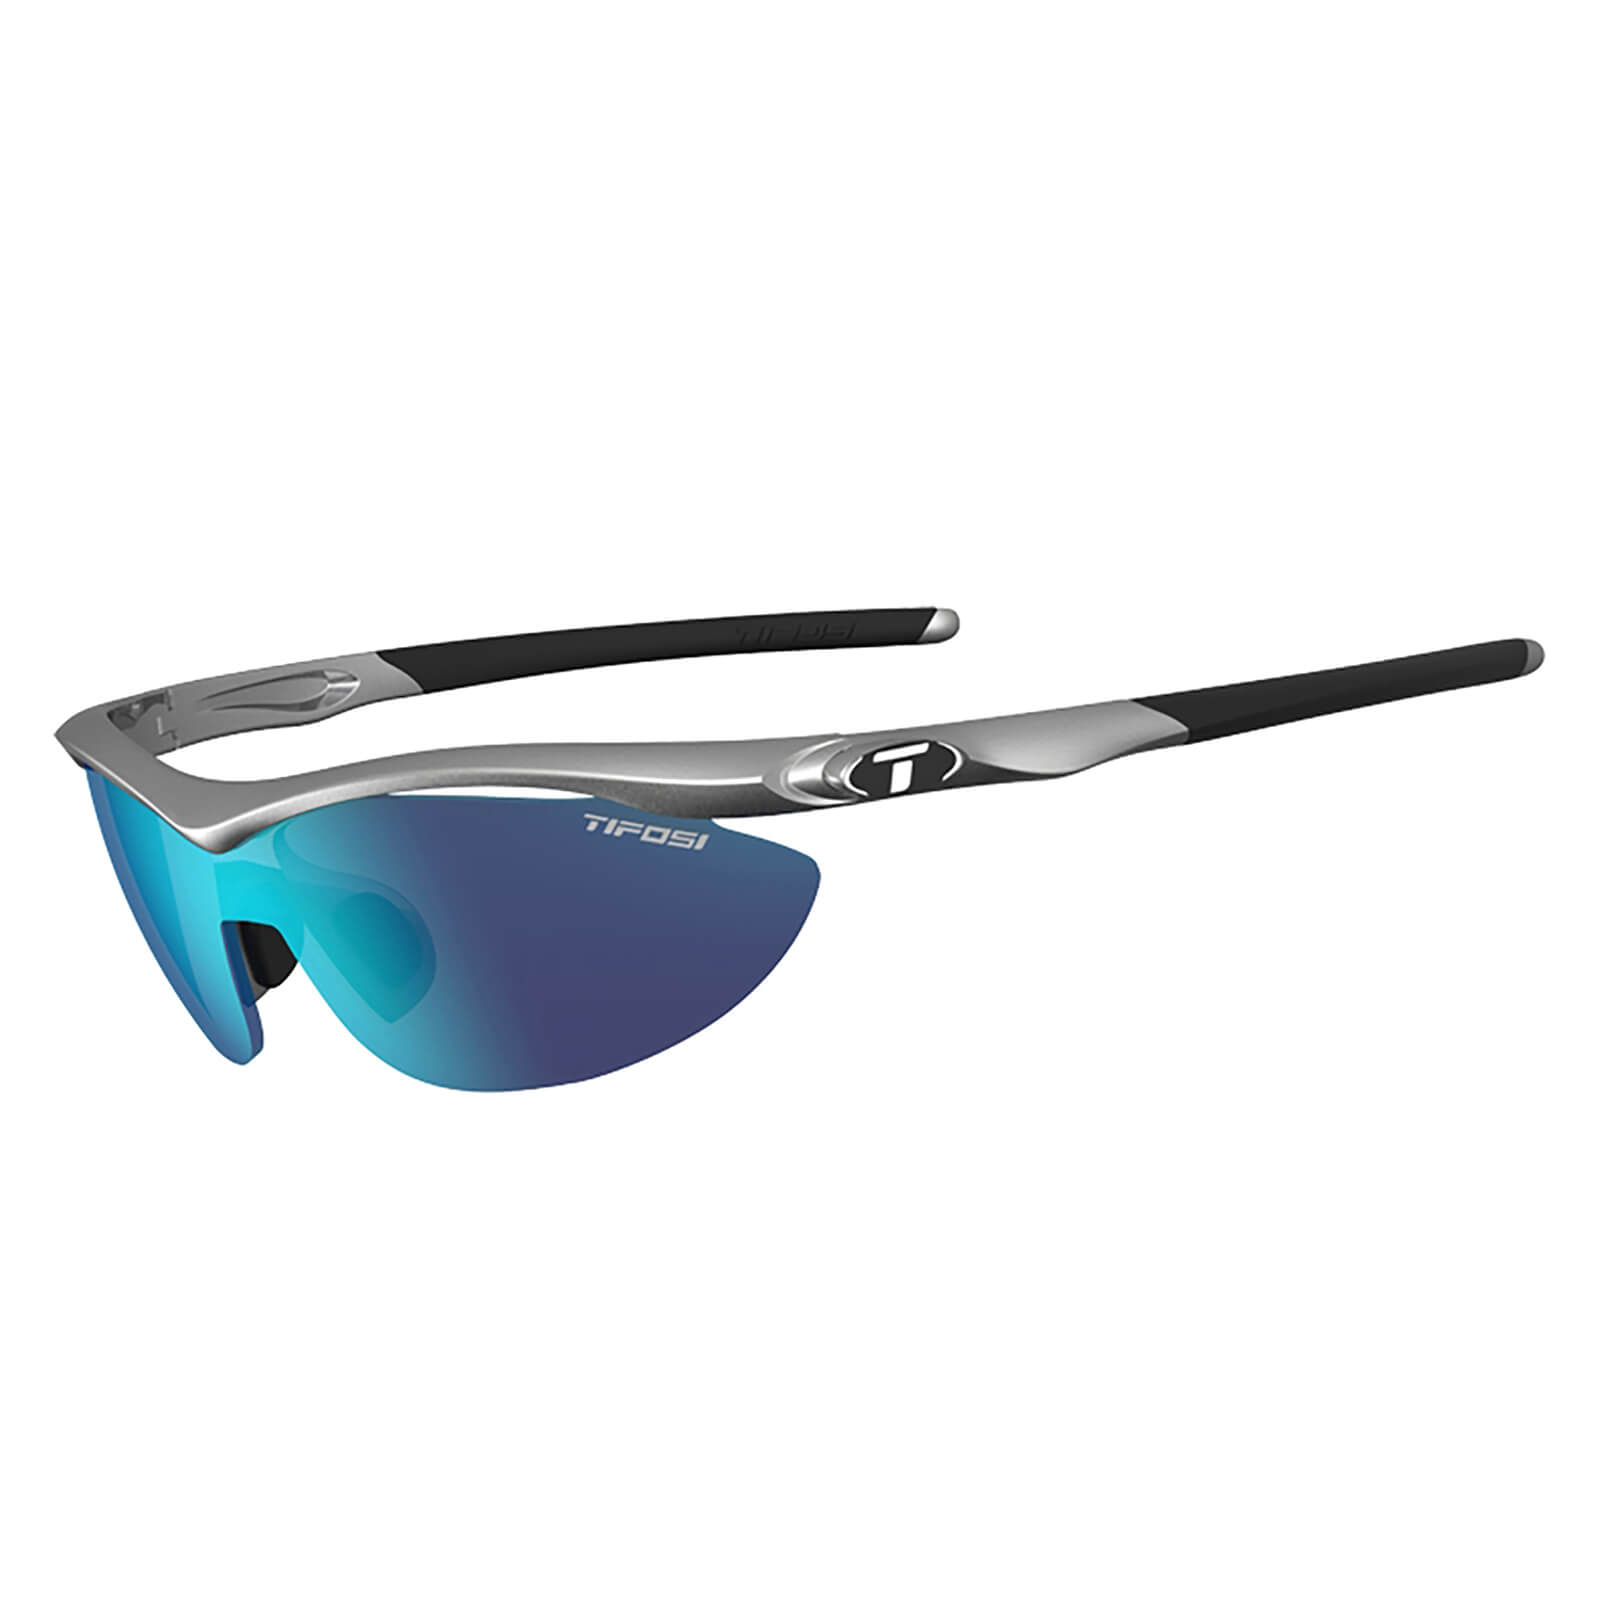 Tifosi Slip Interchangeable Sunglasses - Steel/Clarion Blue